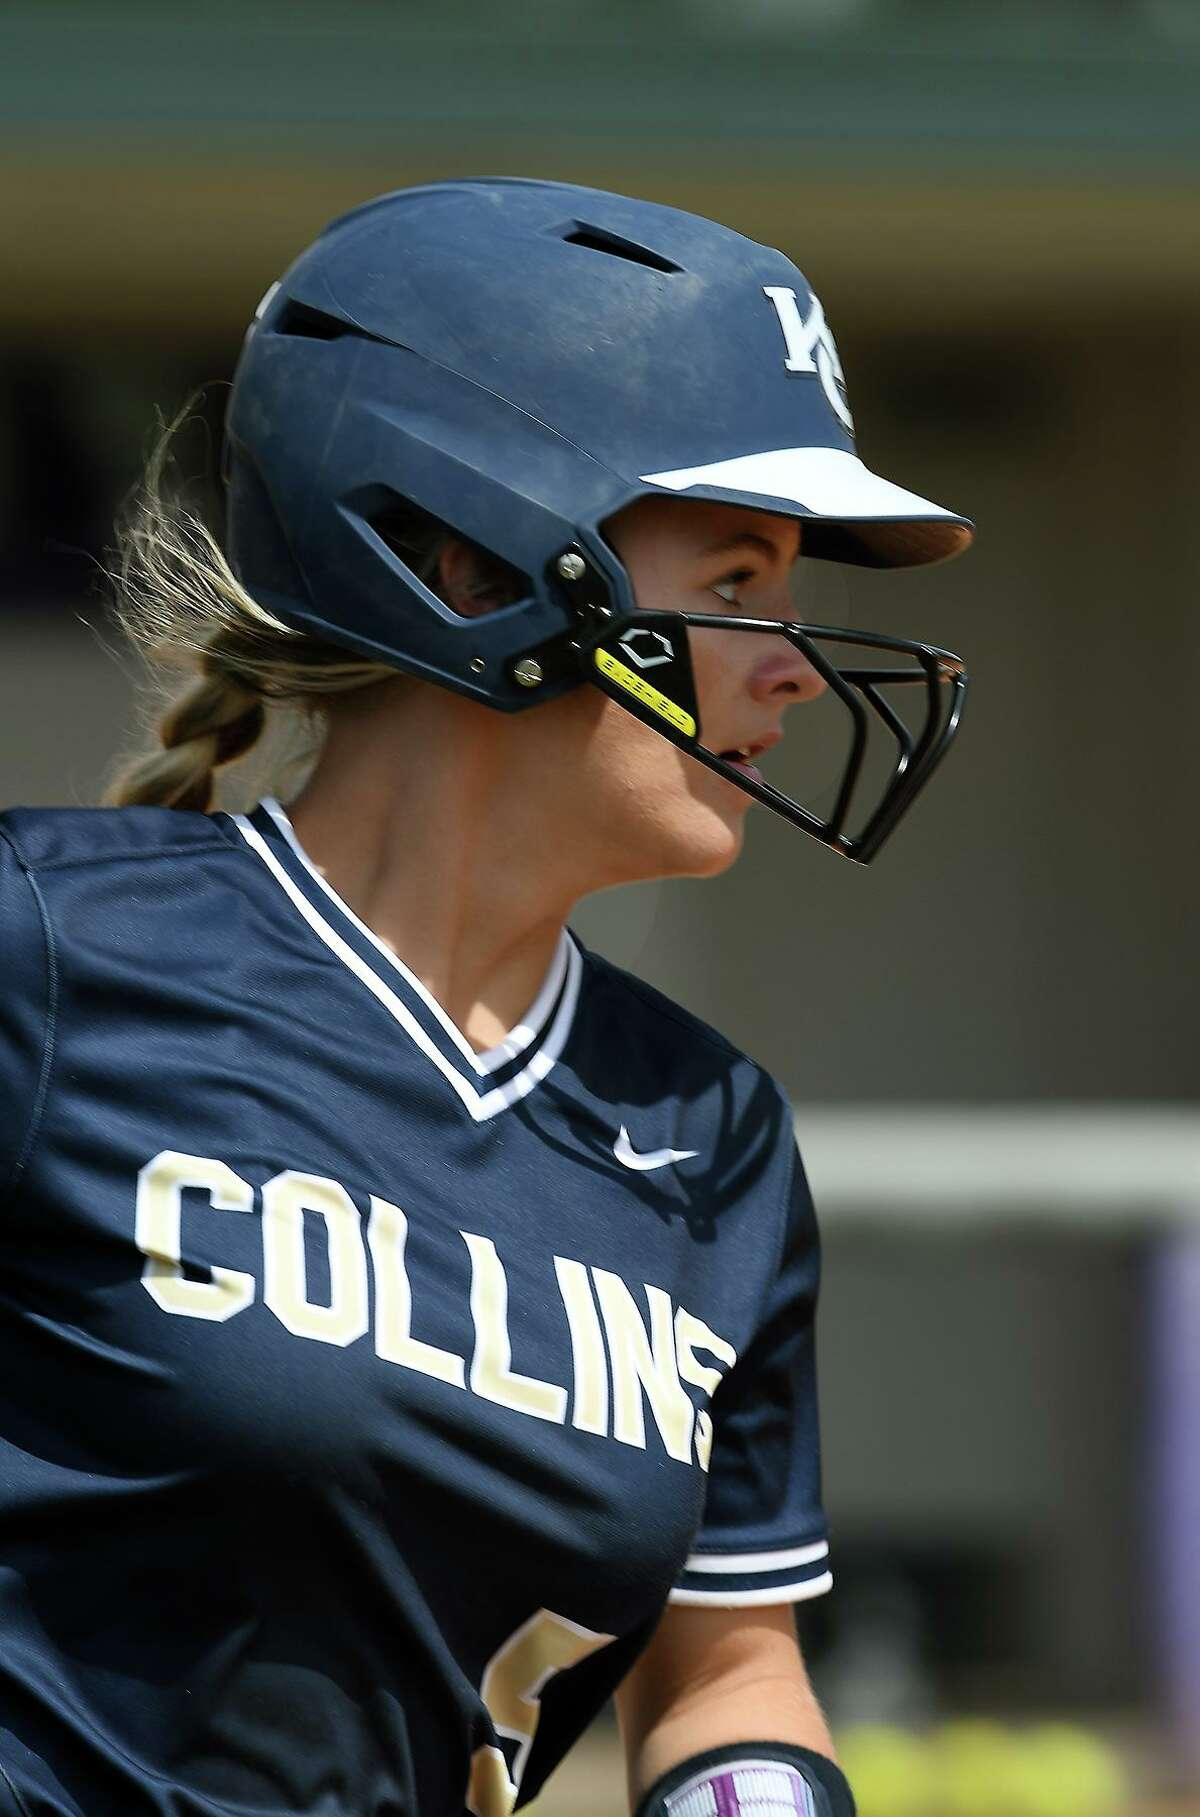 Tomball and Klein ISD softball coaches released the All-District 15-6A teams following the conclusion of each team's 2020-21 regular season and postseason. Klein Collins senior center fielder Kylee Jacks was named Defensive Player of the Year.